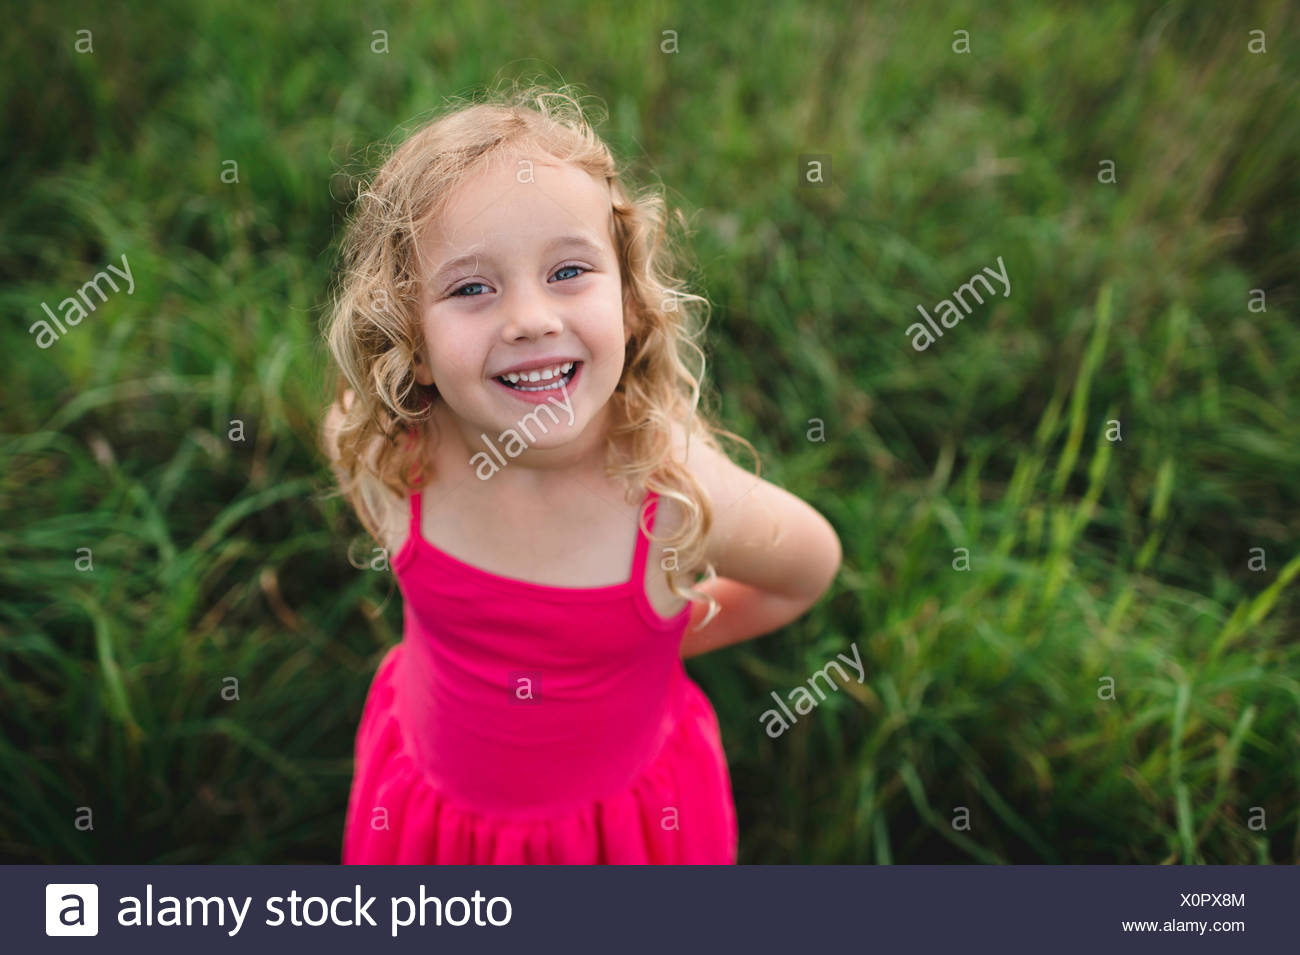 Portrait of blond haired girl in grass - Stock Image